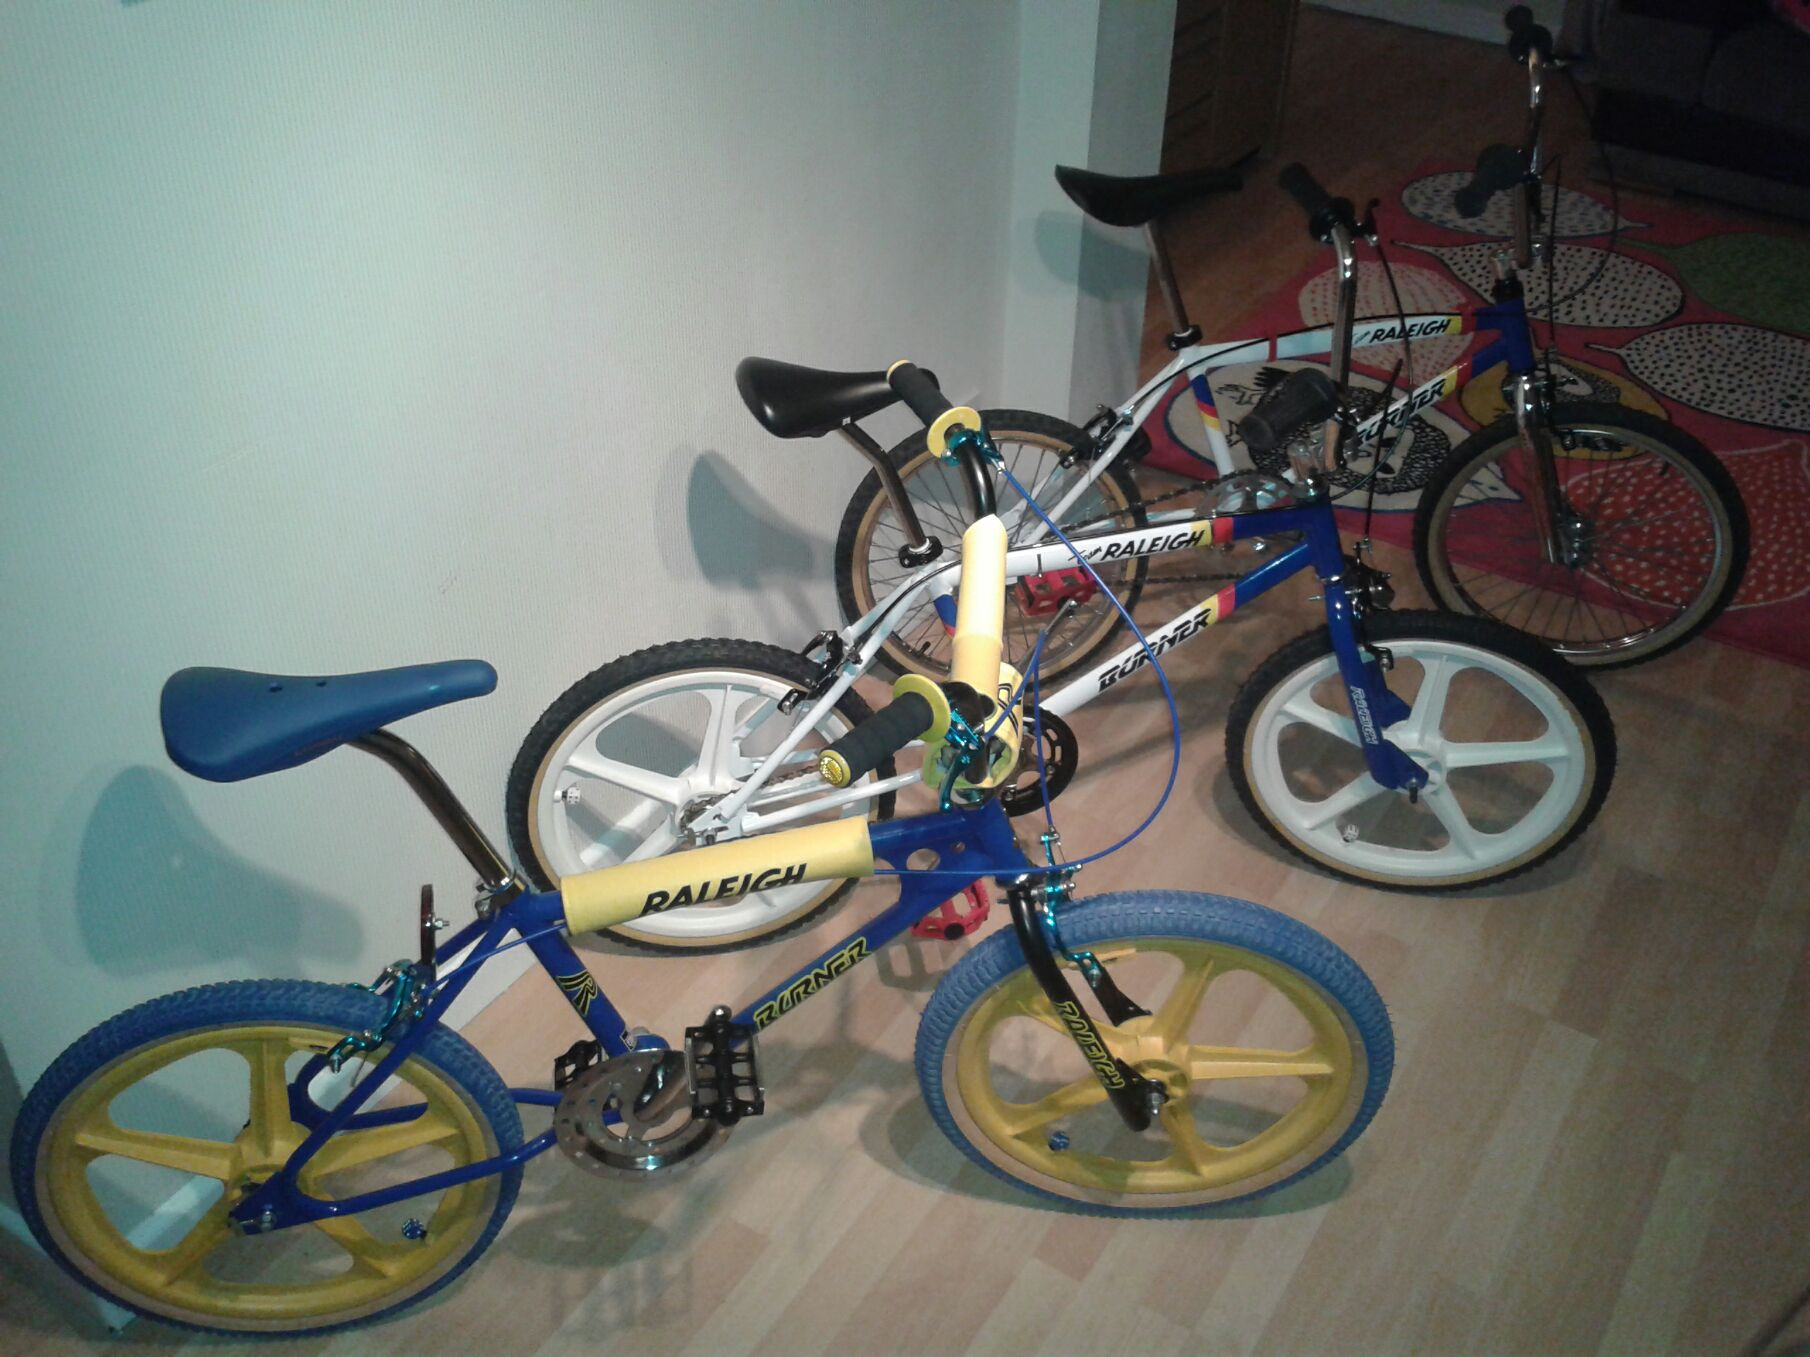 KAOS BMX Keeping Alive Old School BMX's - Magazine cover